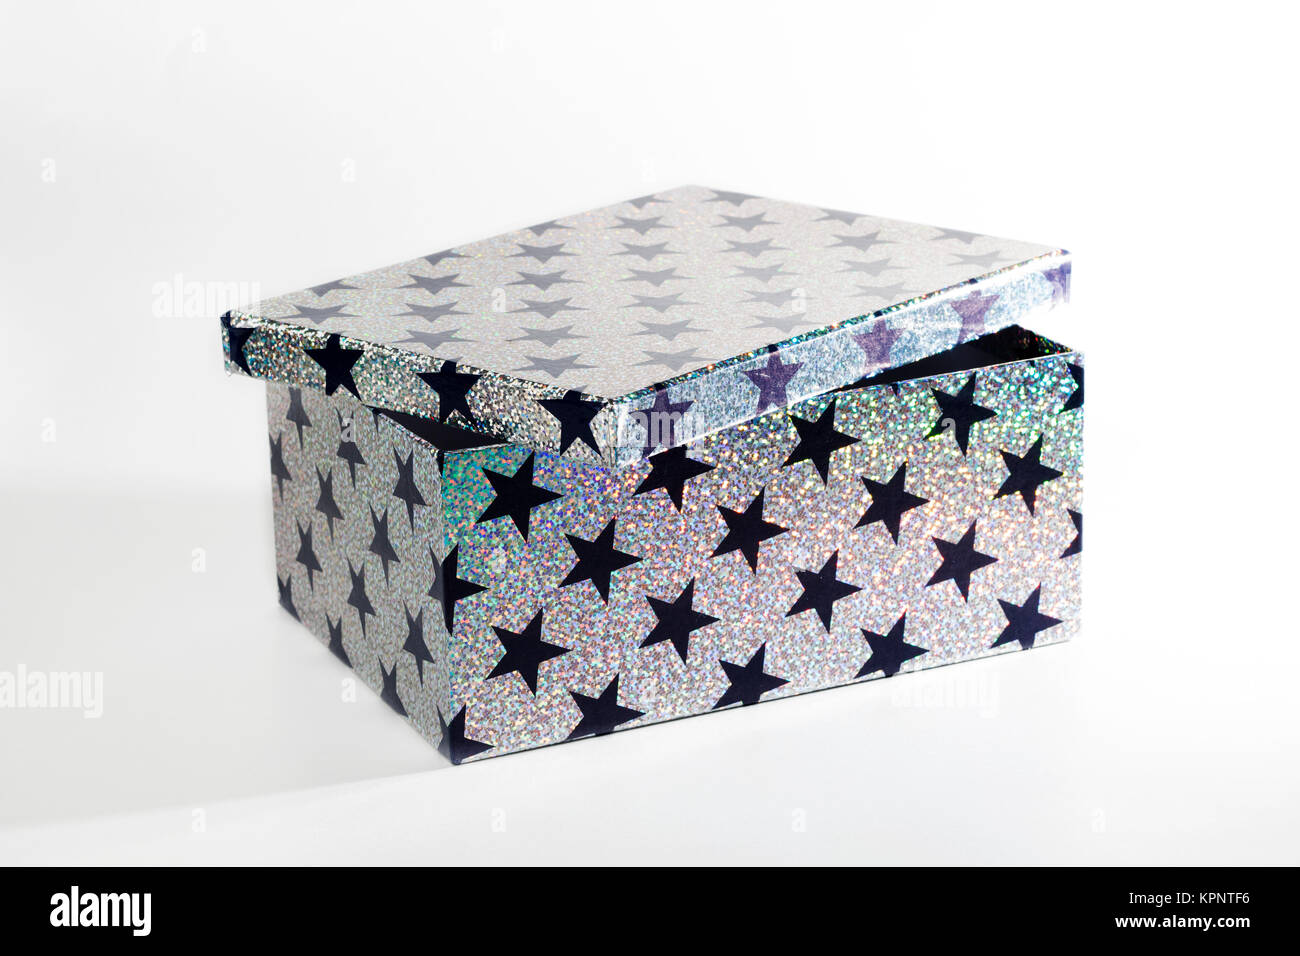 Giftbox with glitters and stars, isolated - Stock Image